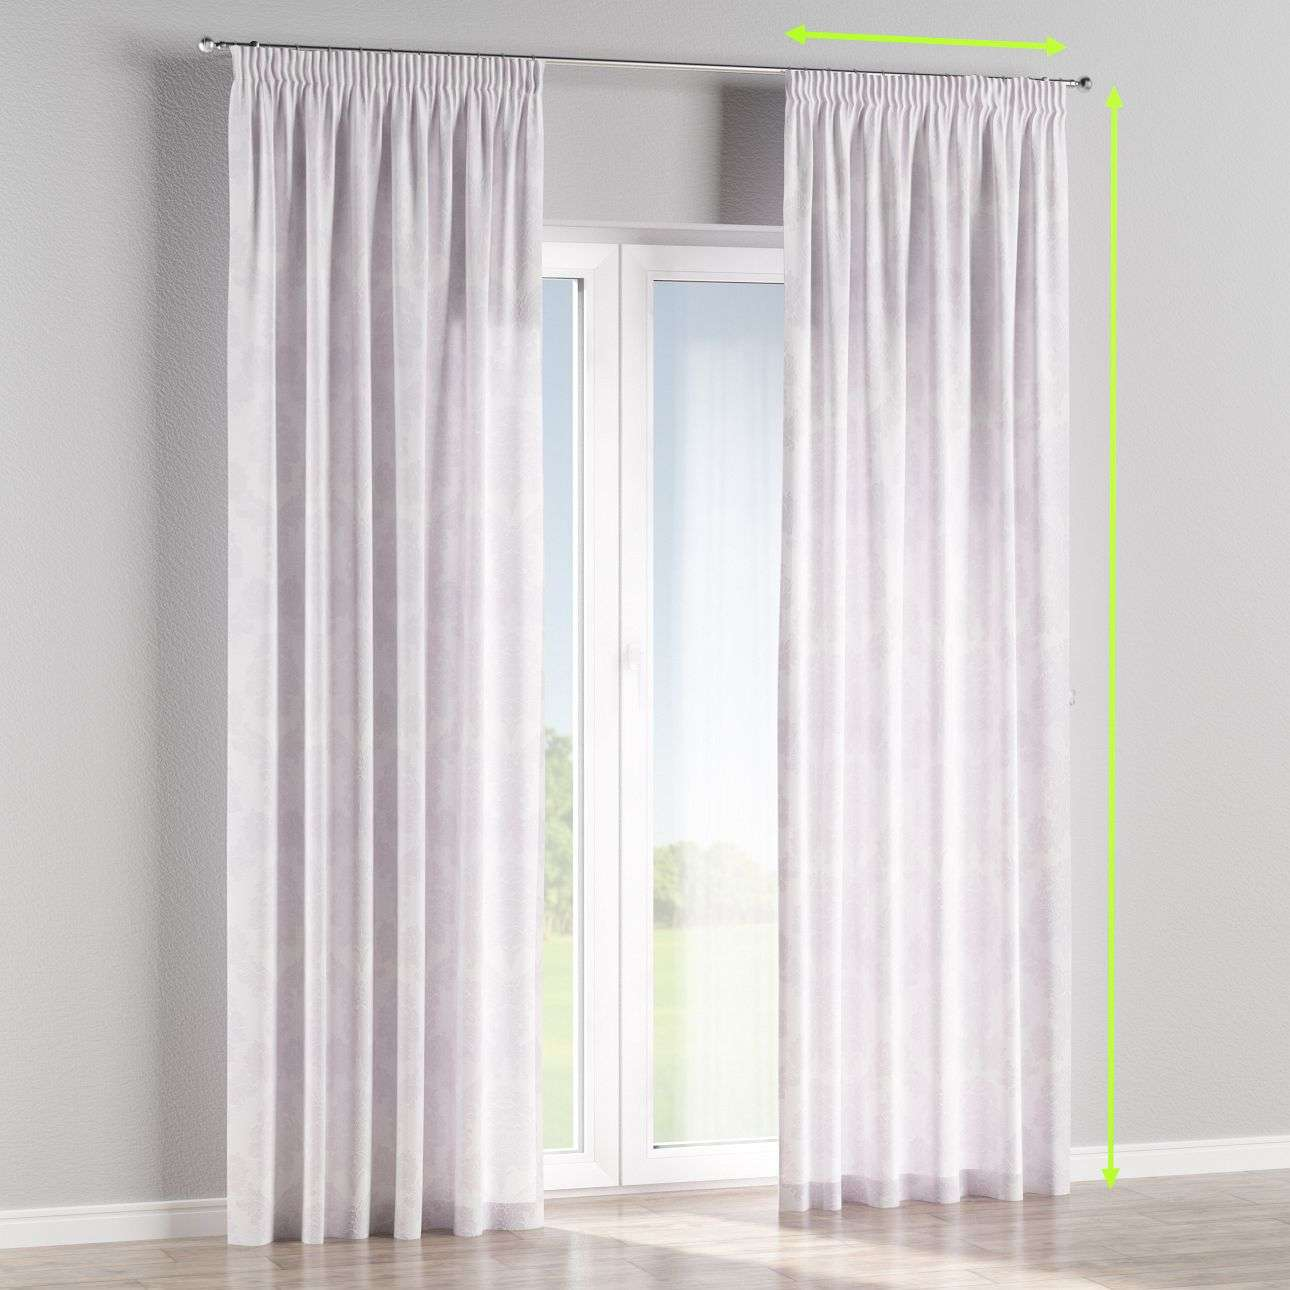 Pencil pleat lined curtains in collection Damasco, fabric: 613-00